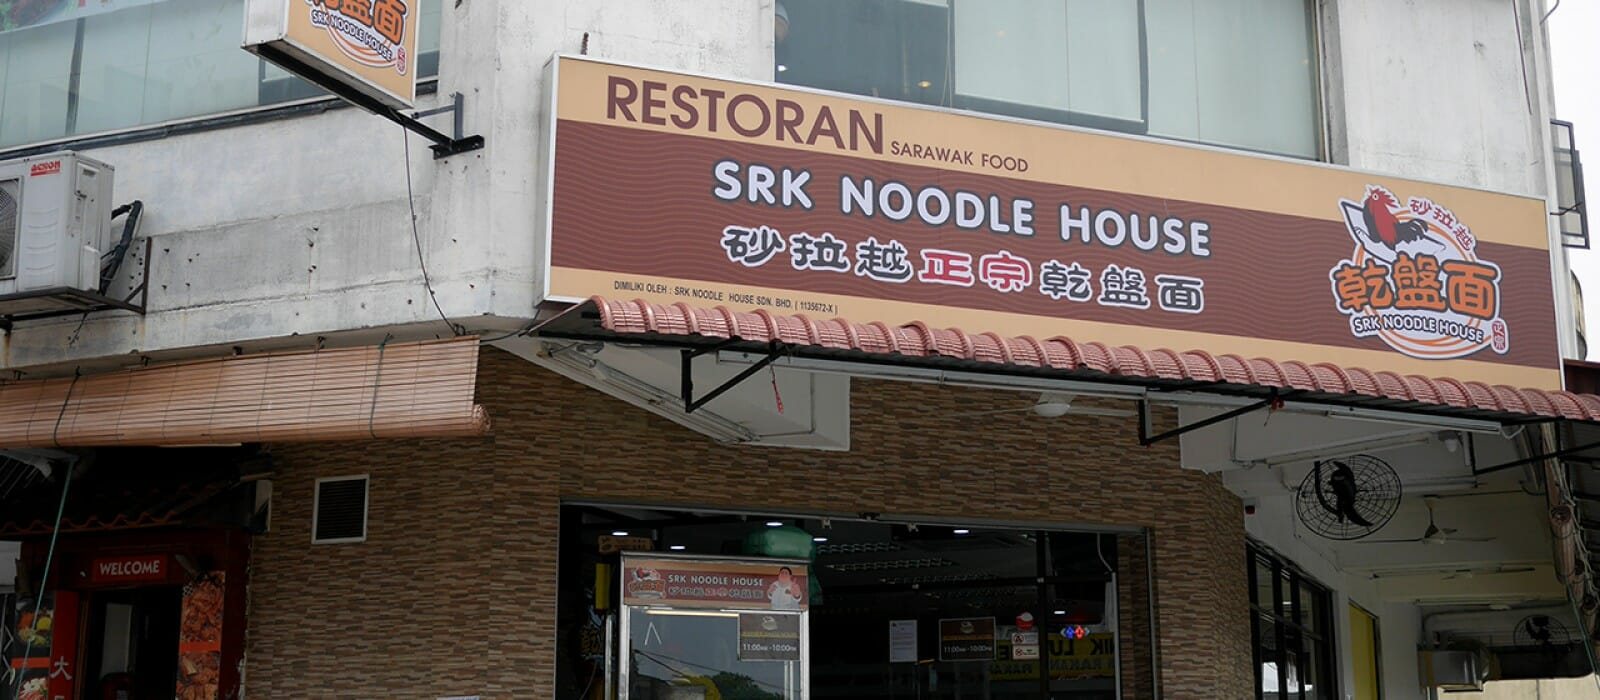 SRK Noodle House, Section 14 Petaling Jaya